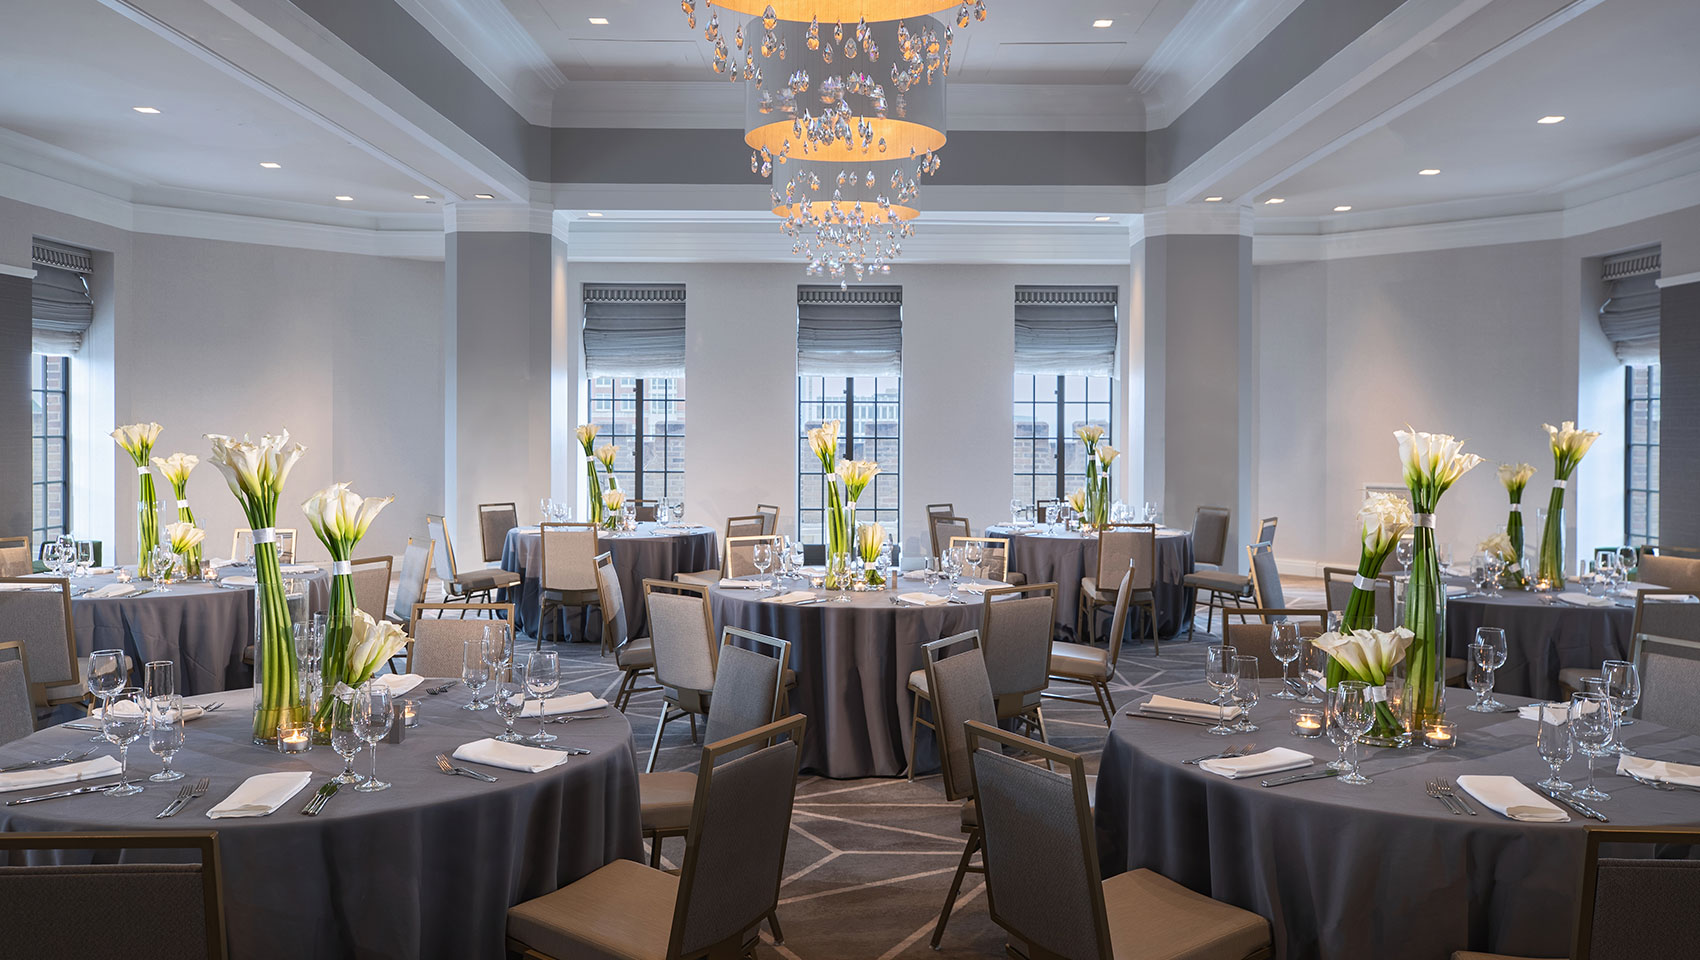 Kimpton Hotel Palomar Philadelphia ballroom set up for a social banquet with multiple round tables with floral arrangements placed in a sunlit room with surrounding windows overlooking views of the city